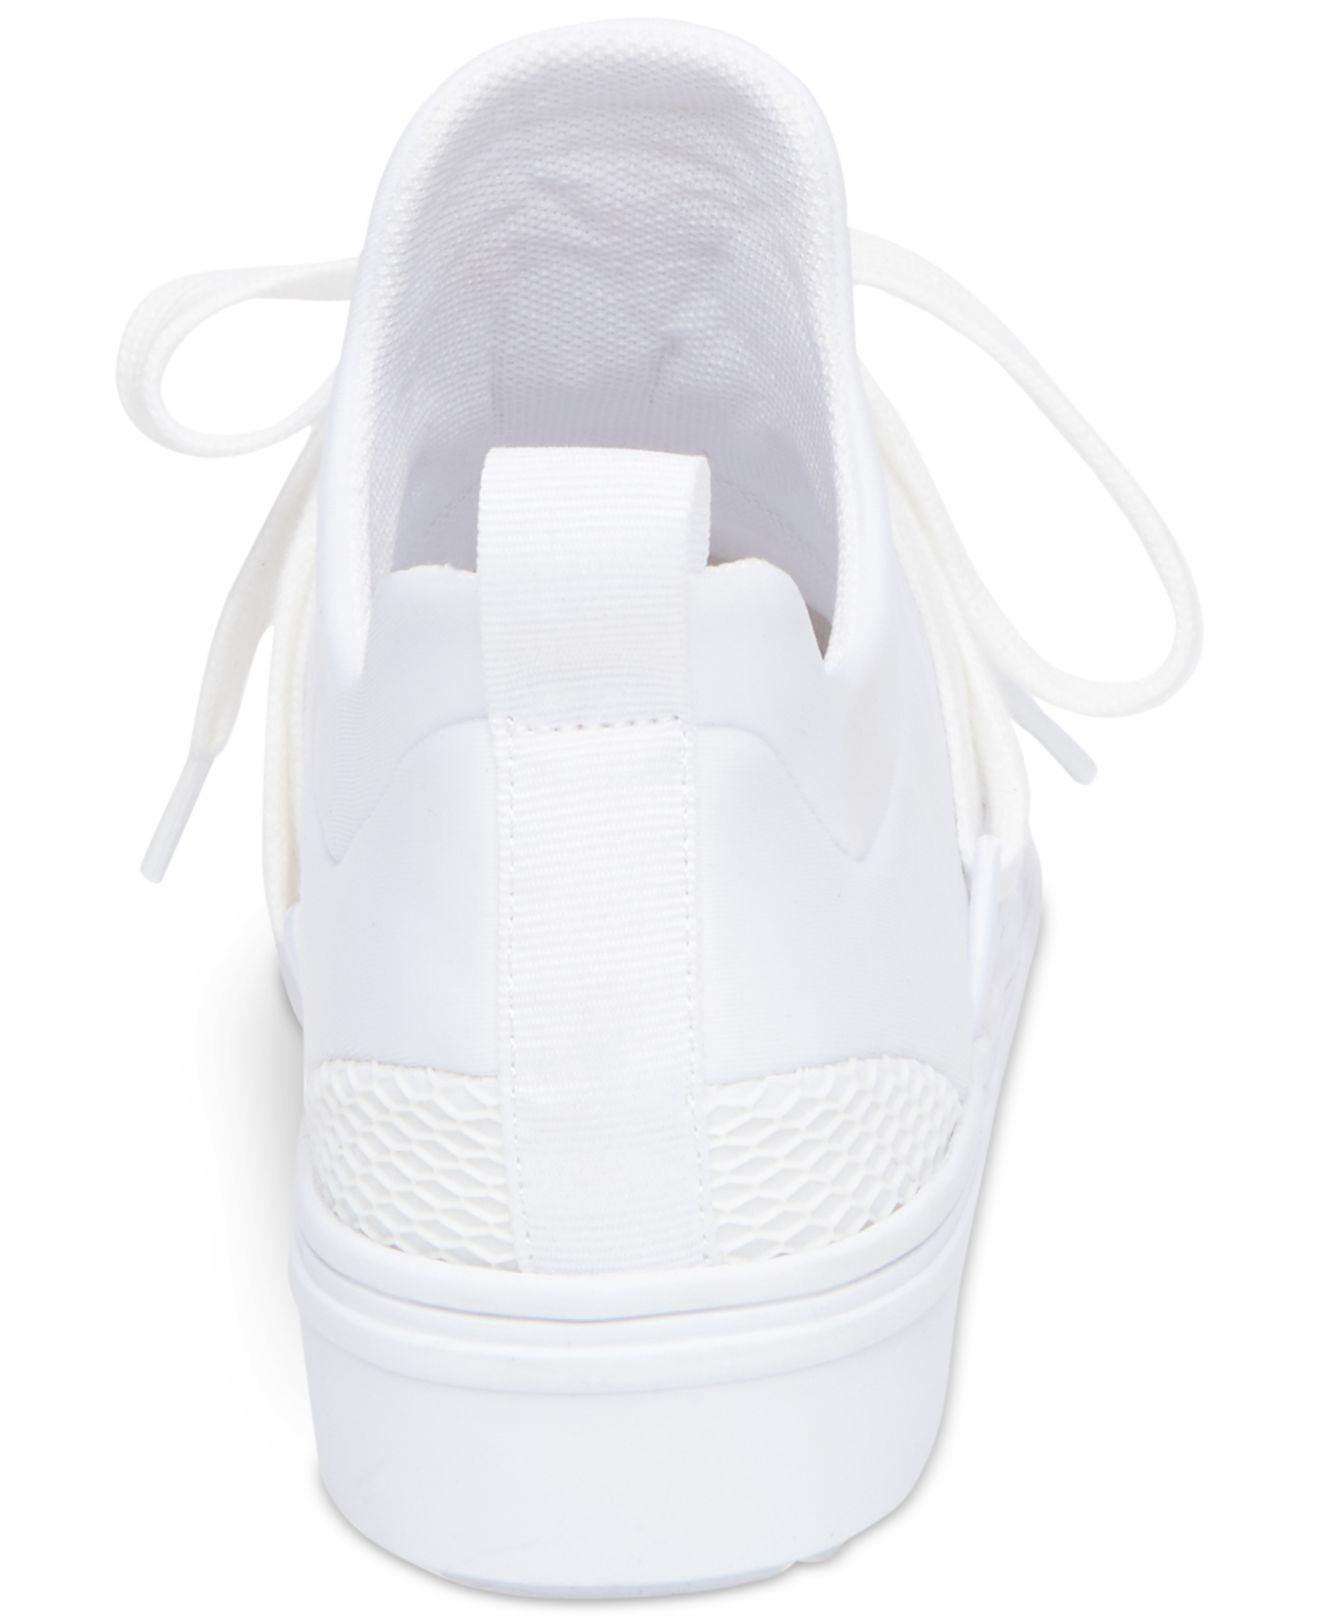 b12b6c0fd47 Lyst - Steve Madden Women s Lancer Athletic Sneakers in White